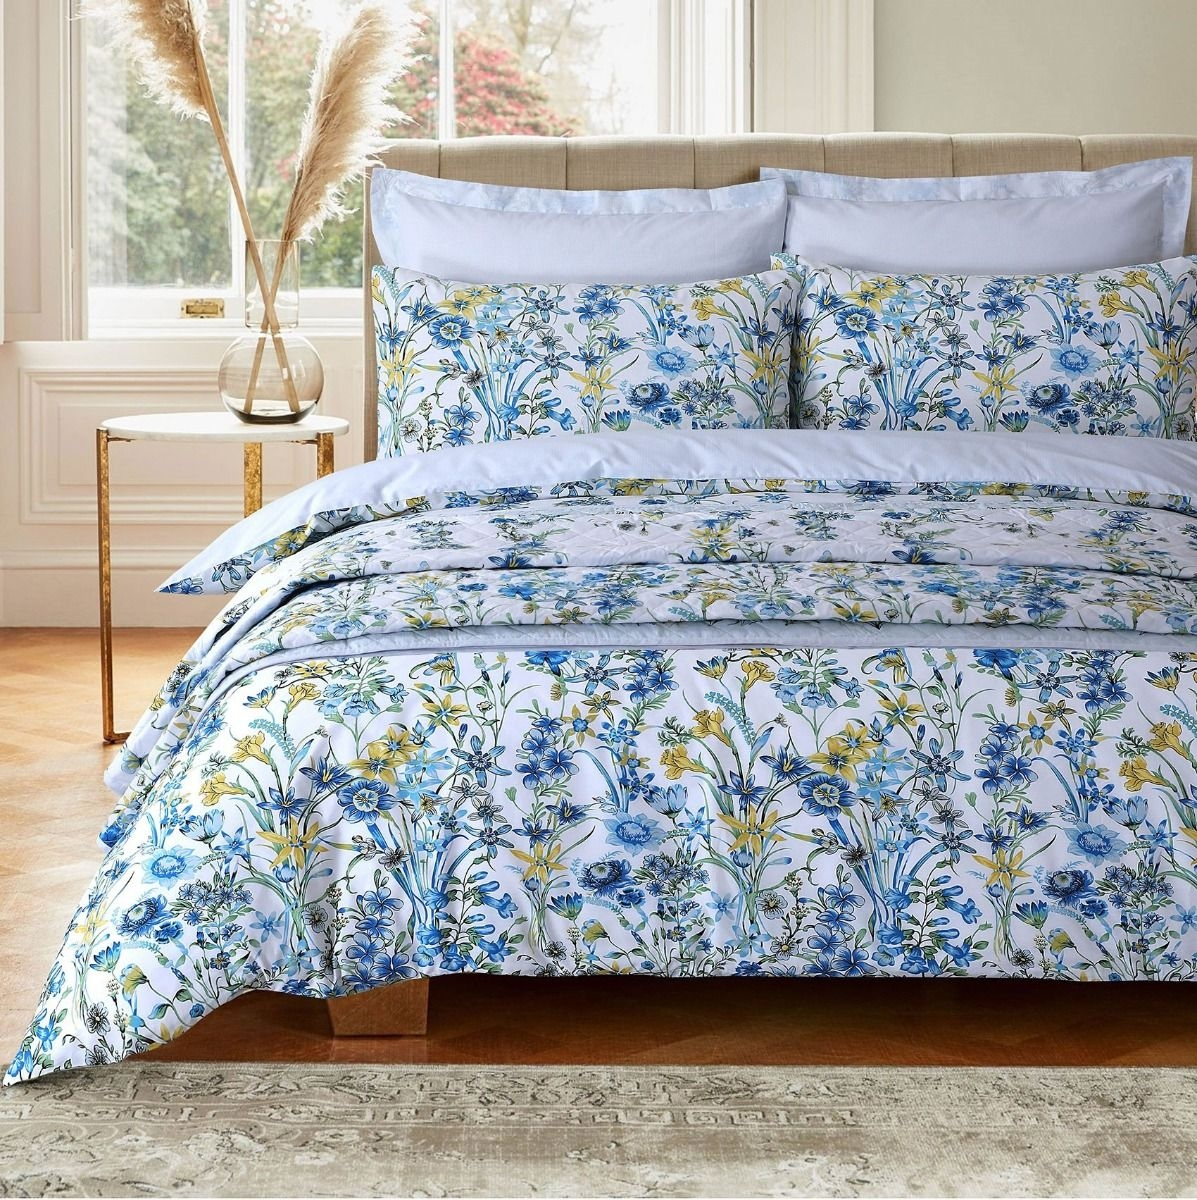 200 THREAD PRINTED BED LINEN